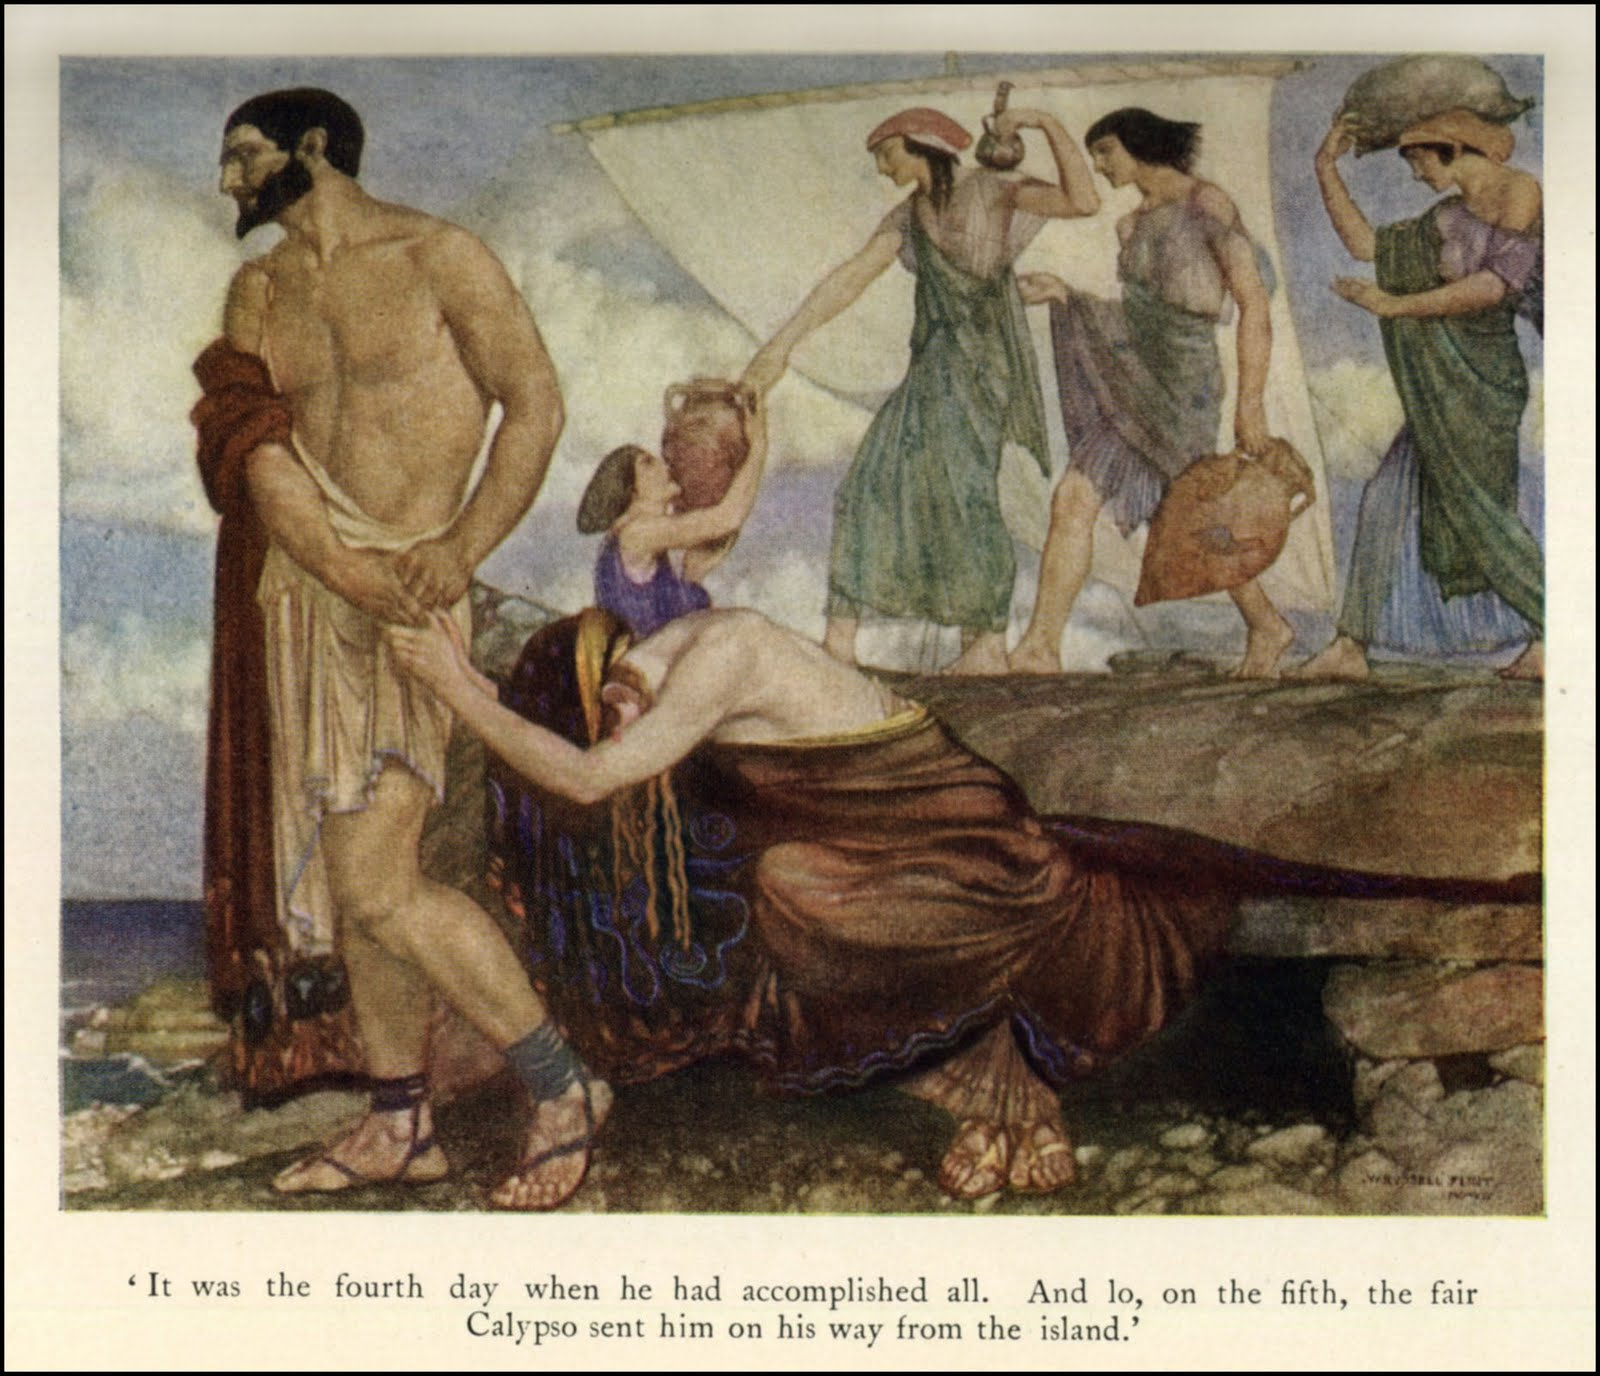 odysseus intelligence An example of a lack of hospitality was when odysseus and his men came upon the kyklopes', and the one-eyed monsters treated them terribly on first sight they tried to kill odysseus and all his men.